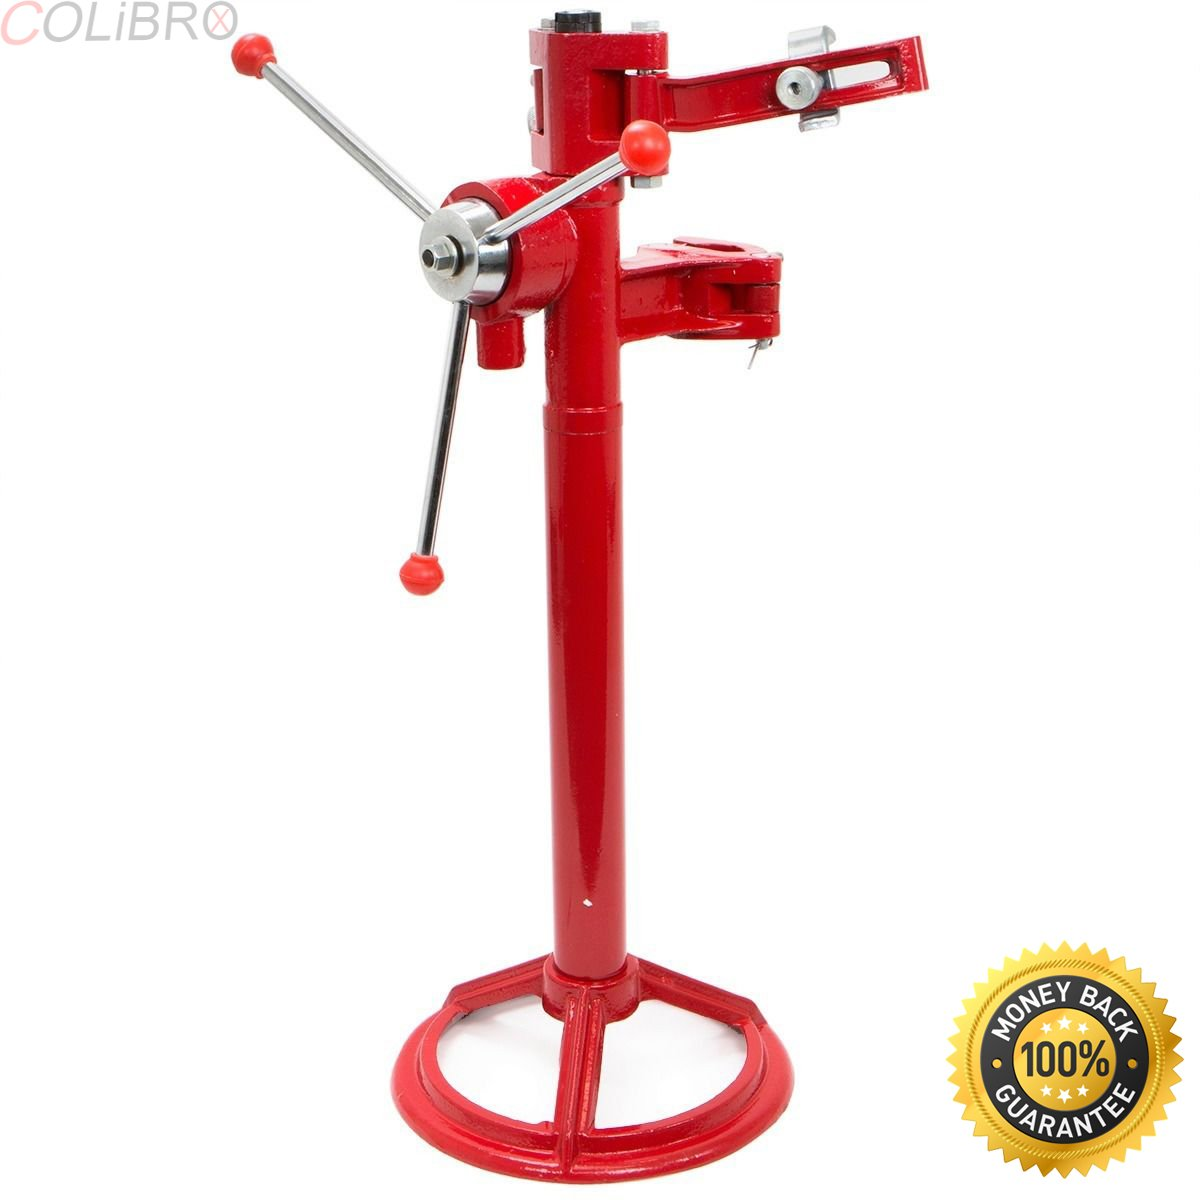 COLIBROX--Hand Operate Strut Coil Spring Press Compressor Auto Equipment High Speed Tool. Hand operated, compress 3 Knob handle, Rounded base provide by COLIBROX